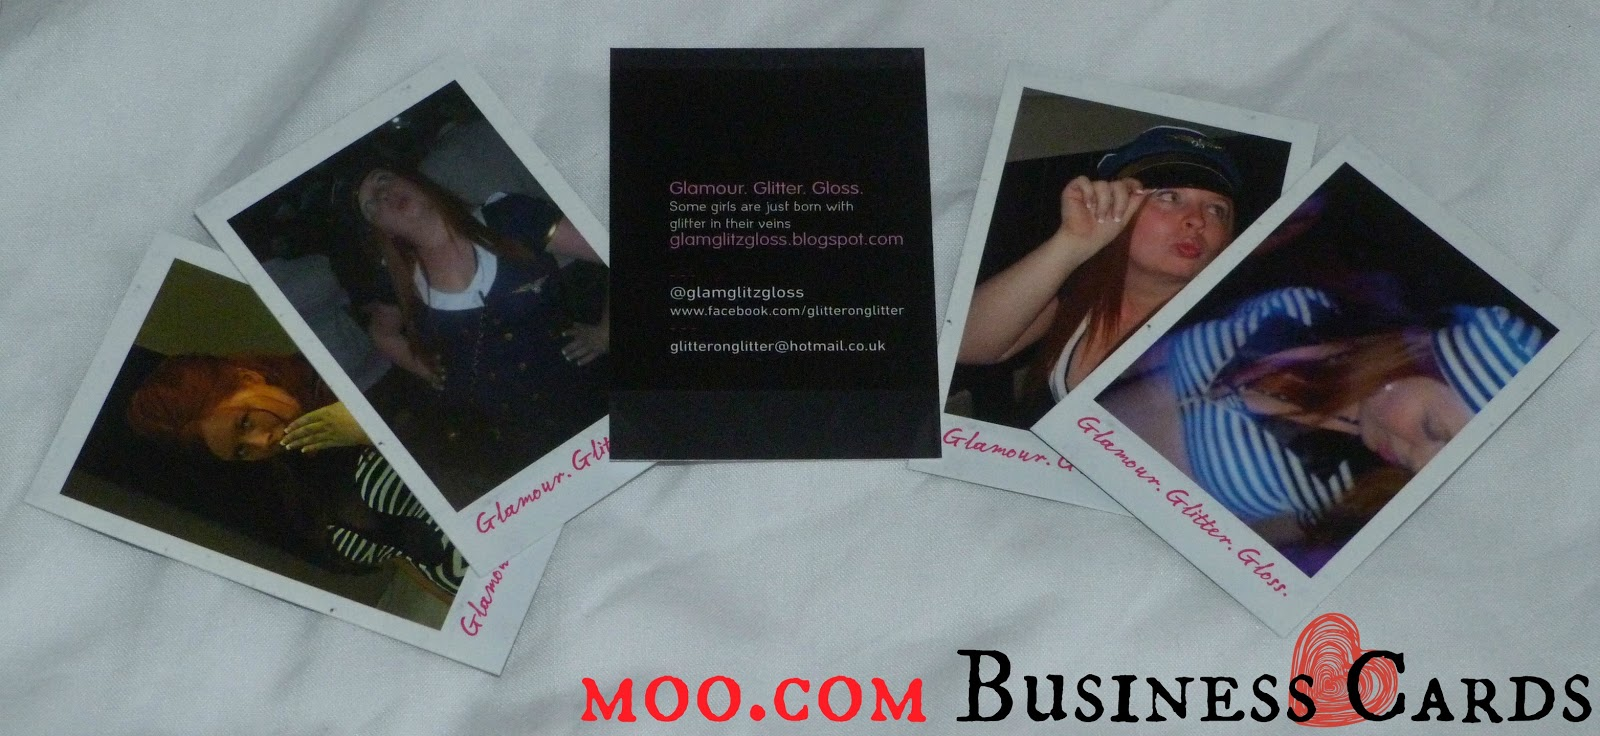 The Geek Moo Business Cards by Glamour Glitter Gloss